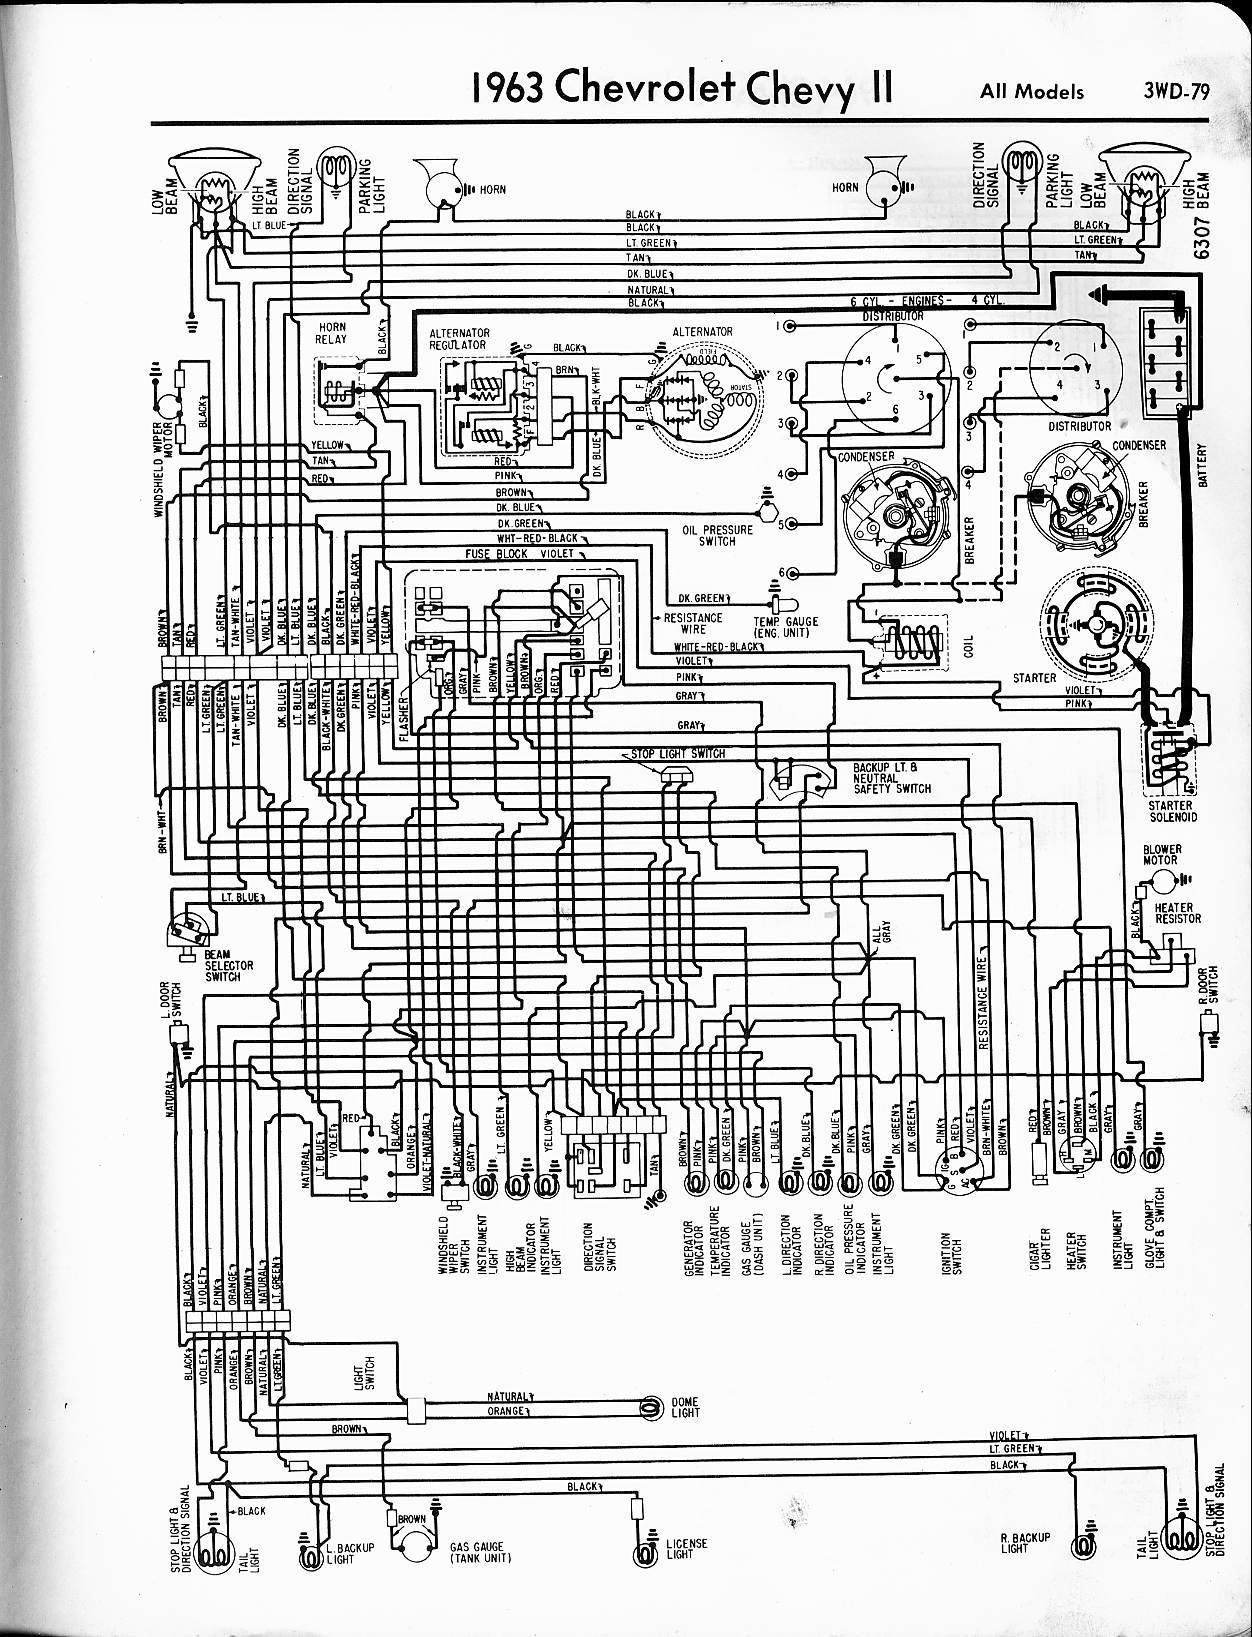 chevrolet cruze diagram wiring schematic Collection-1963 Chevy II All Models 18-s